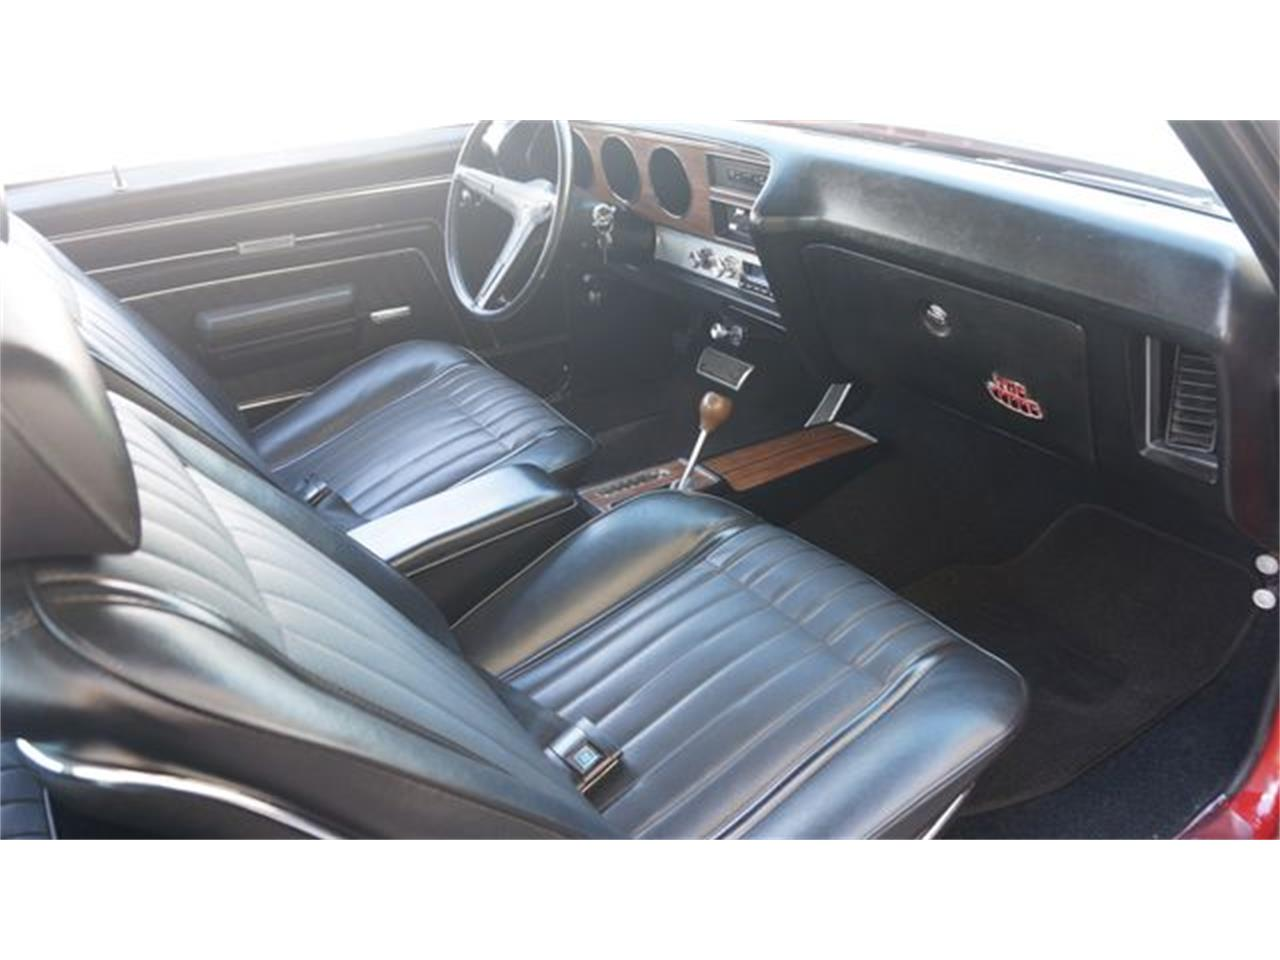 Large Picture of Classic 1970 Pontiac GTO located in Valley Park Missouri - $59,995.00 - Q8A0